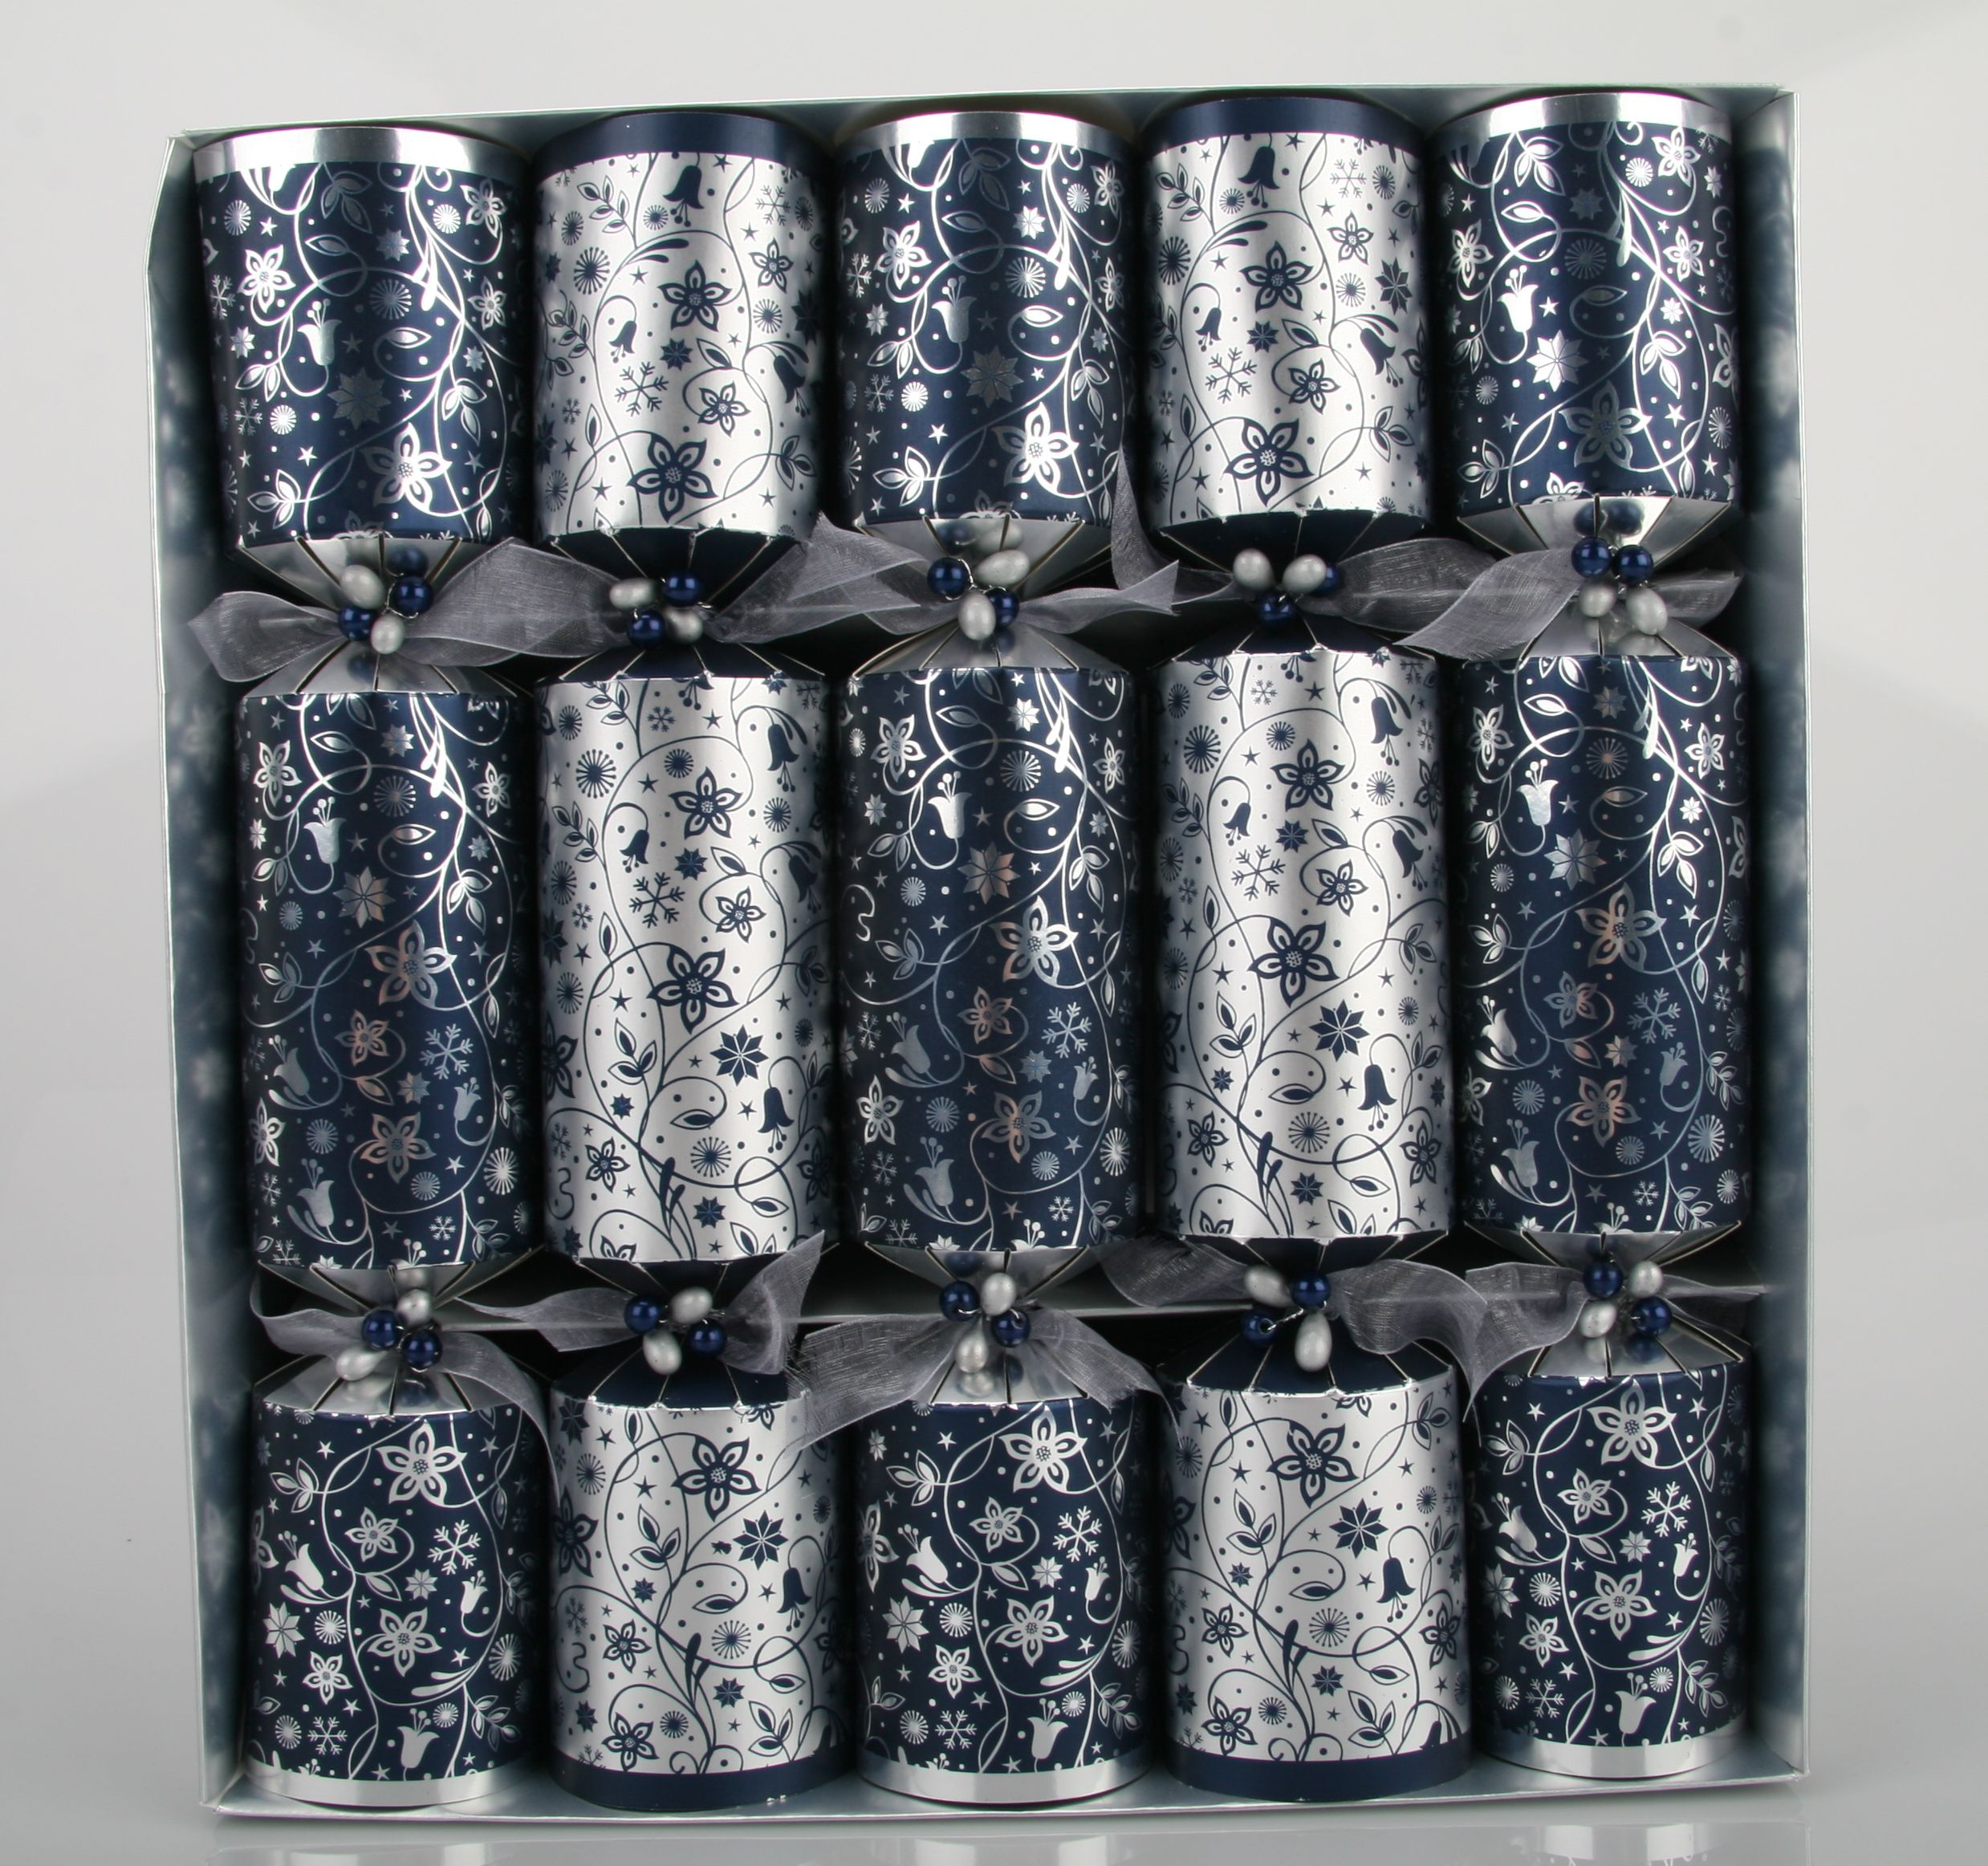 Eclipse 10 navy floral crackers